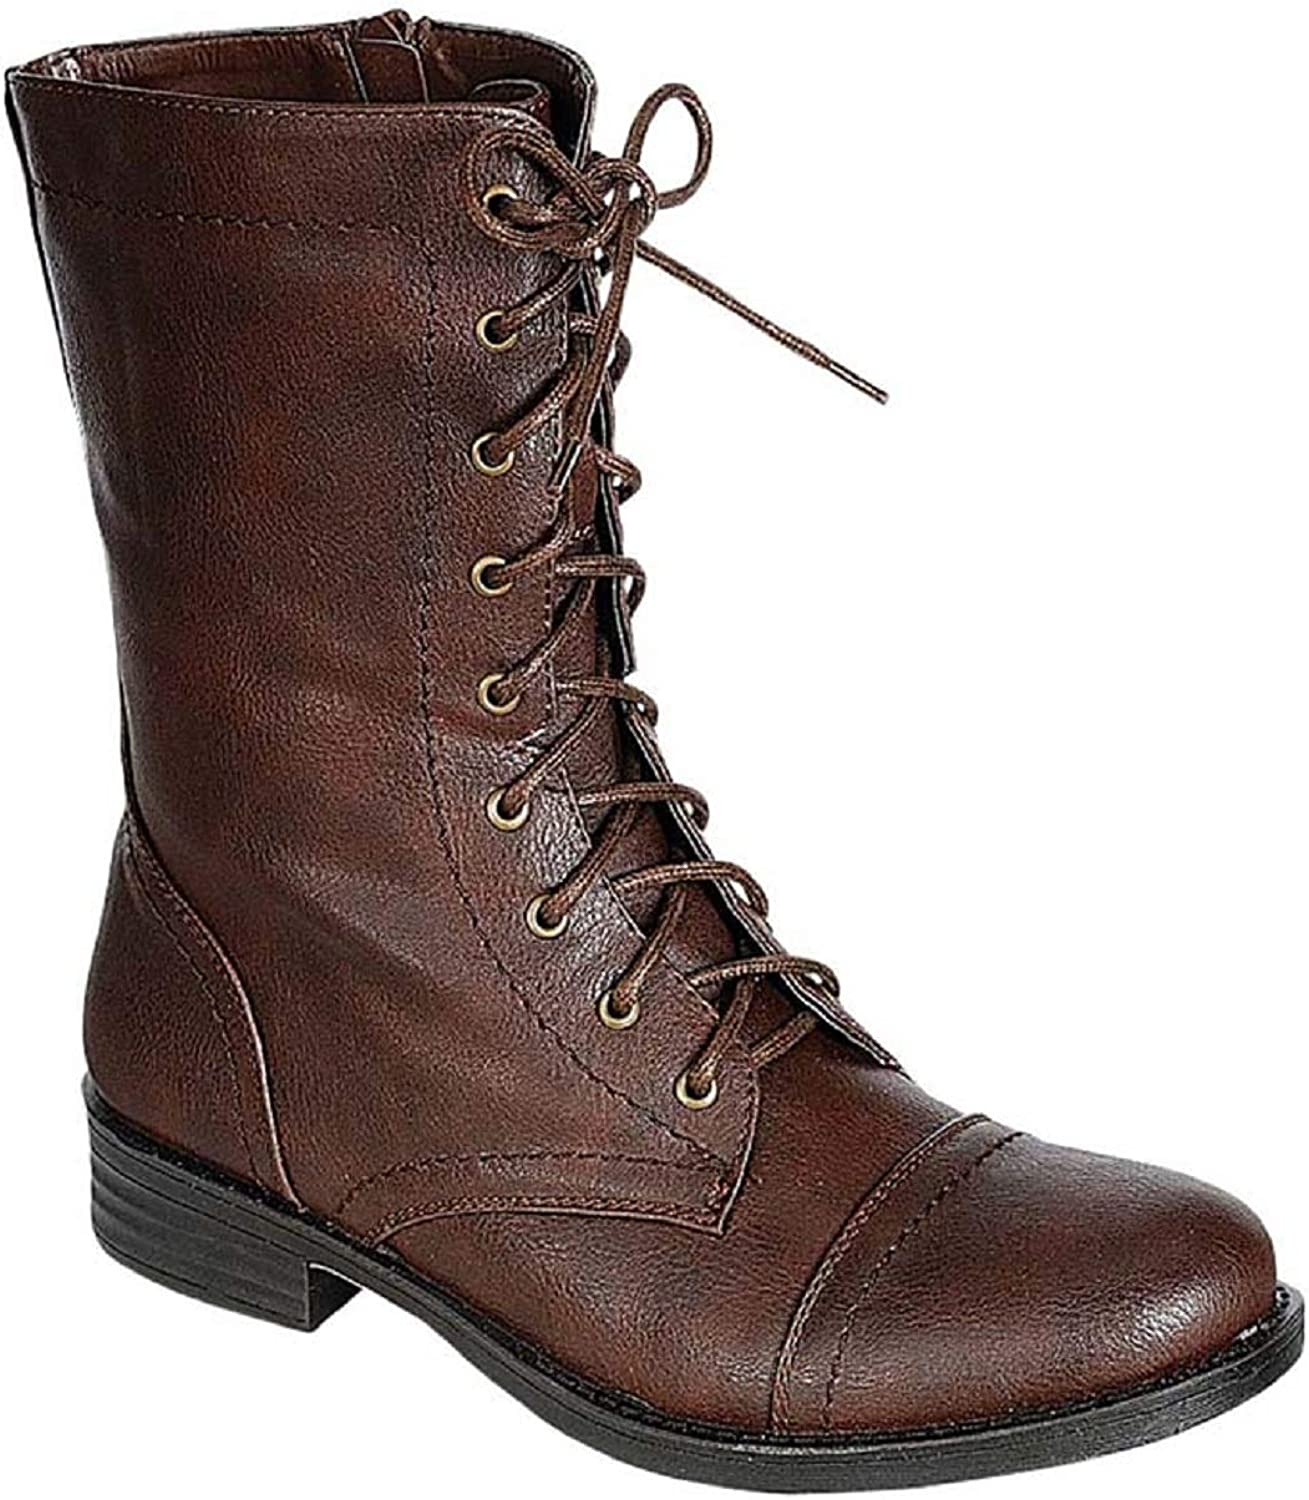 WW Sammy-08 Womens Mid Calf Lace Up Side Zipper Combat Military Construction Boots